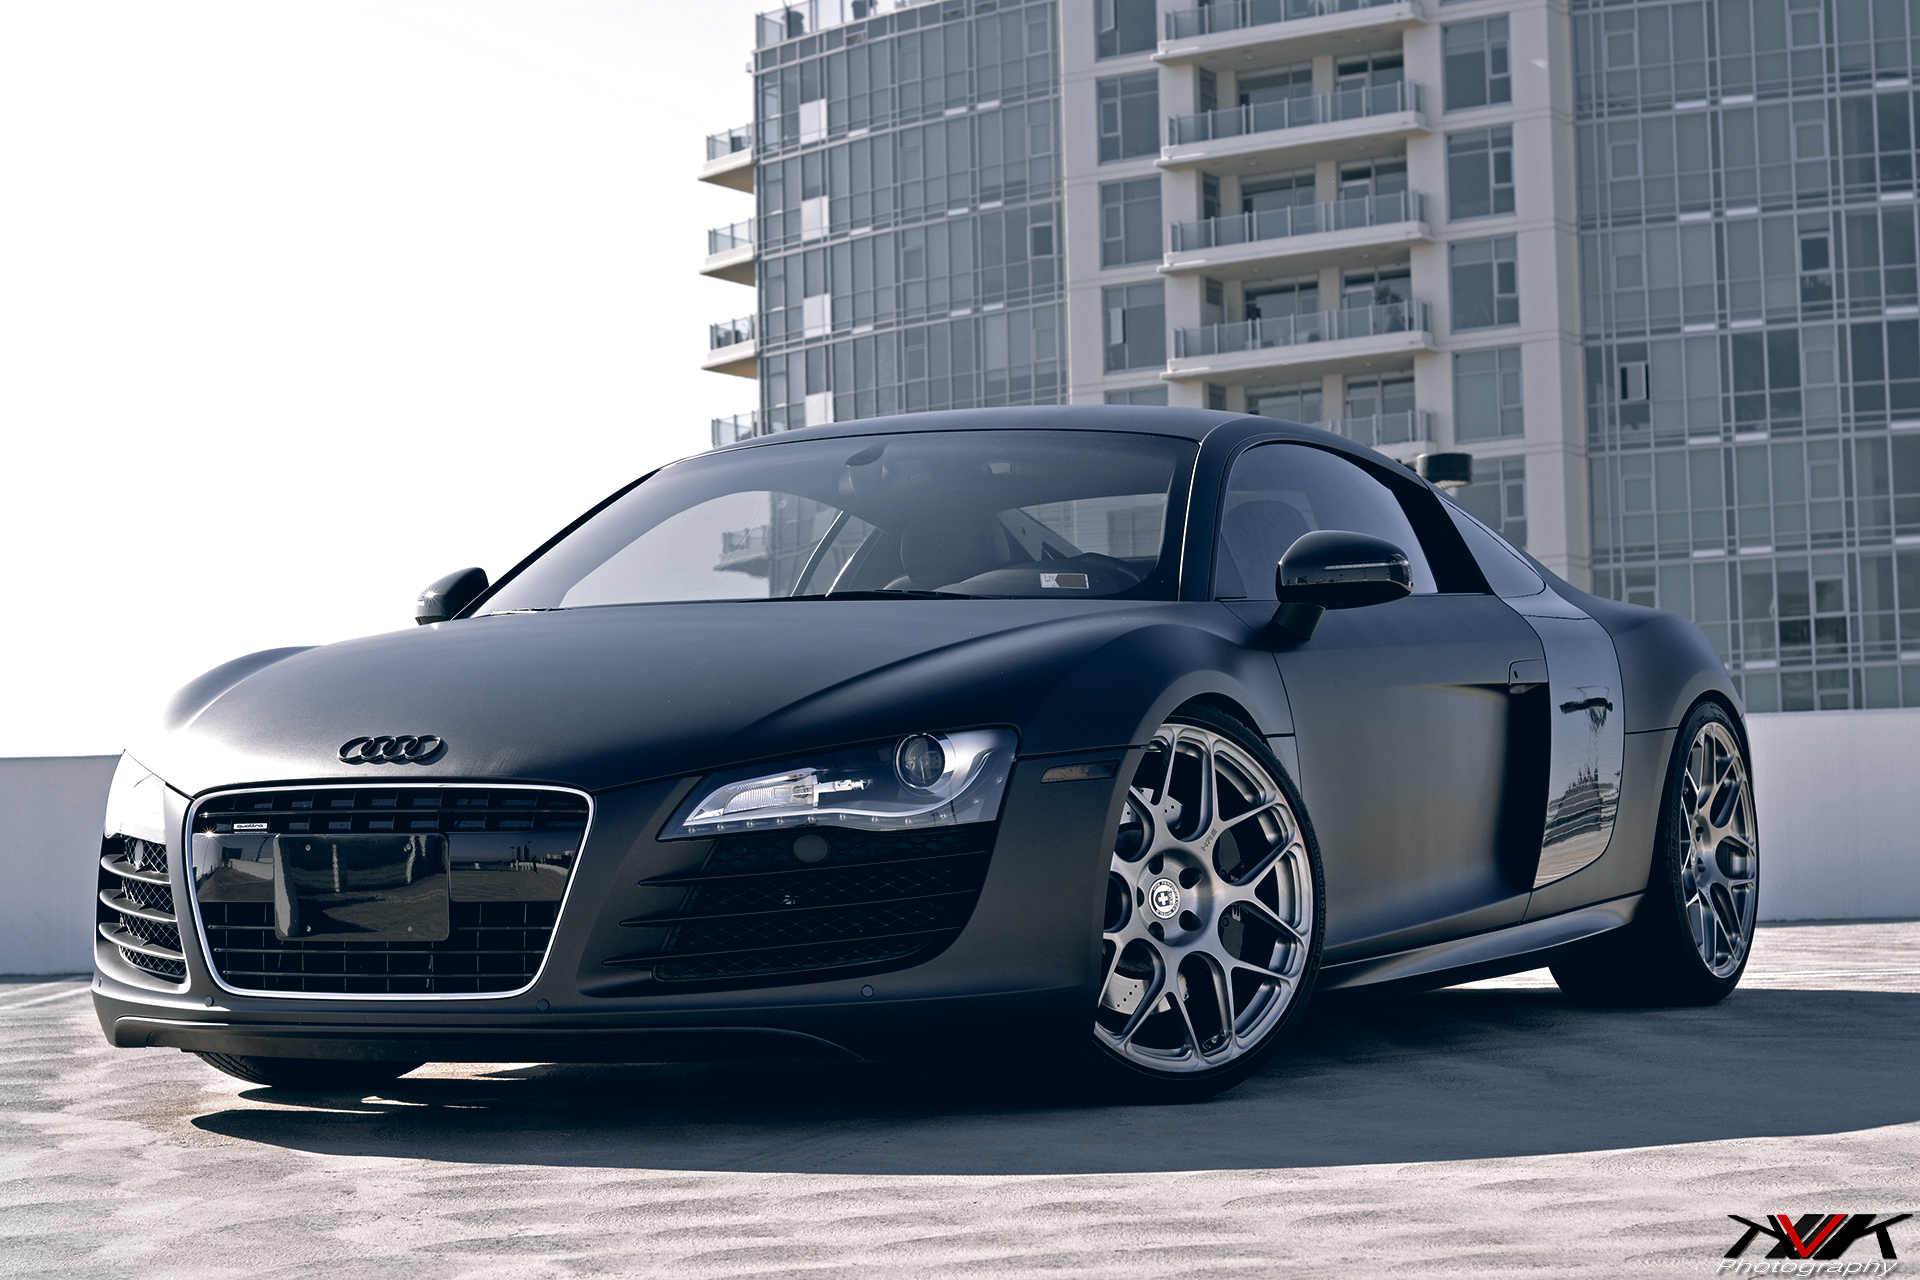 matte black audi r8 on hre p40sc 39 s by kvk photography gtspirit. Black Bedroom Furniture Sets. Home Design Ideas